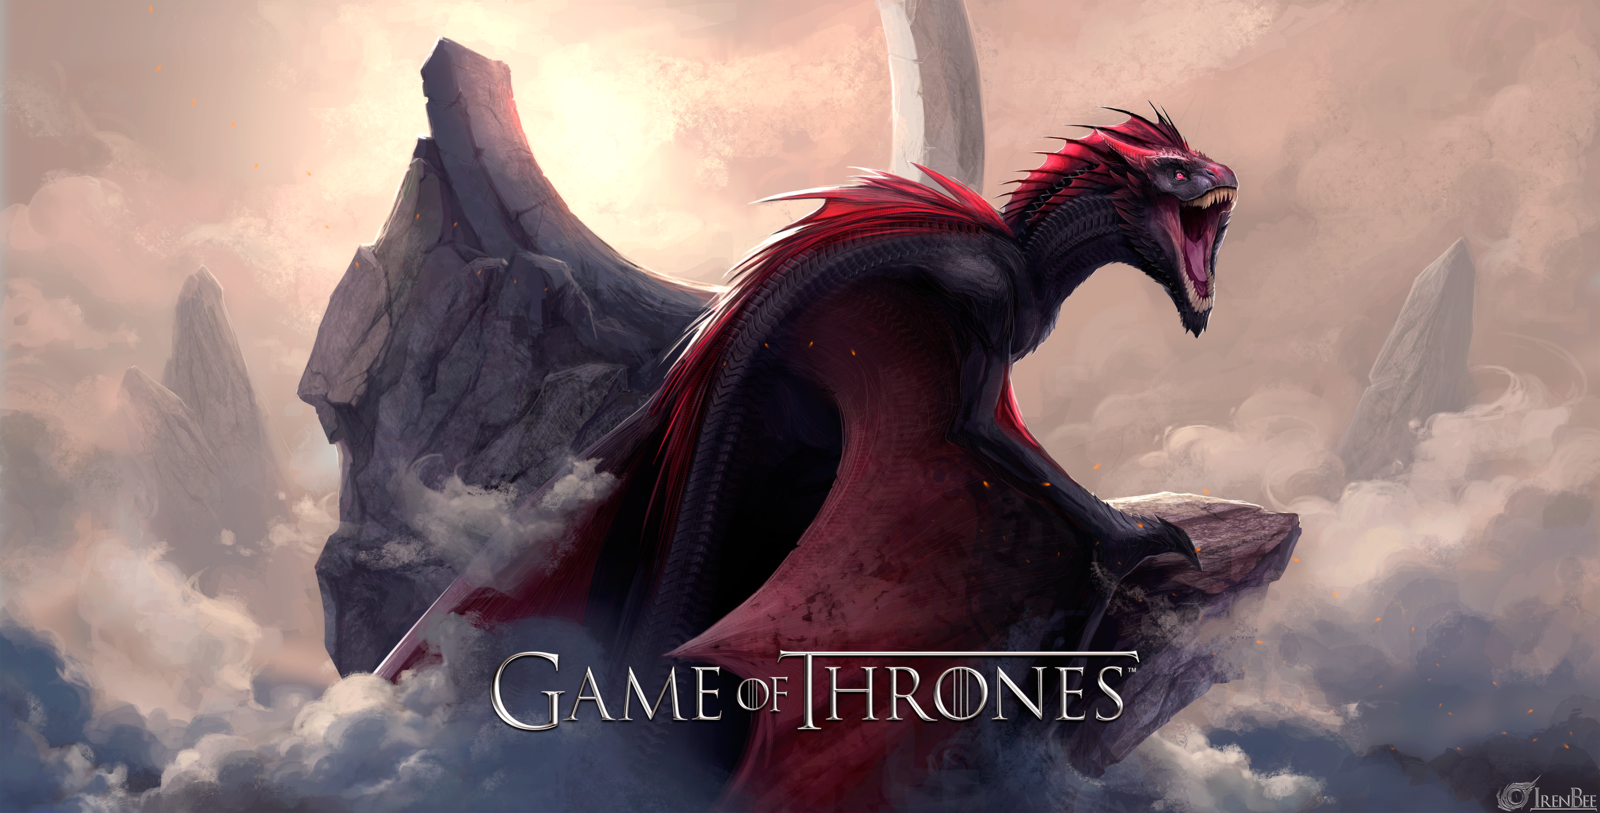 Game of Thrones   Dragon Drogon by IrenBee 1600x813